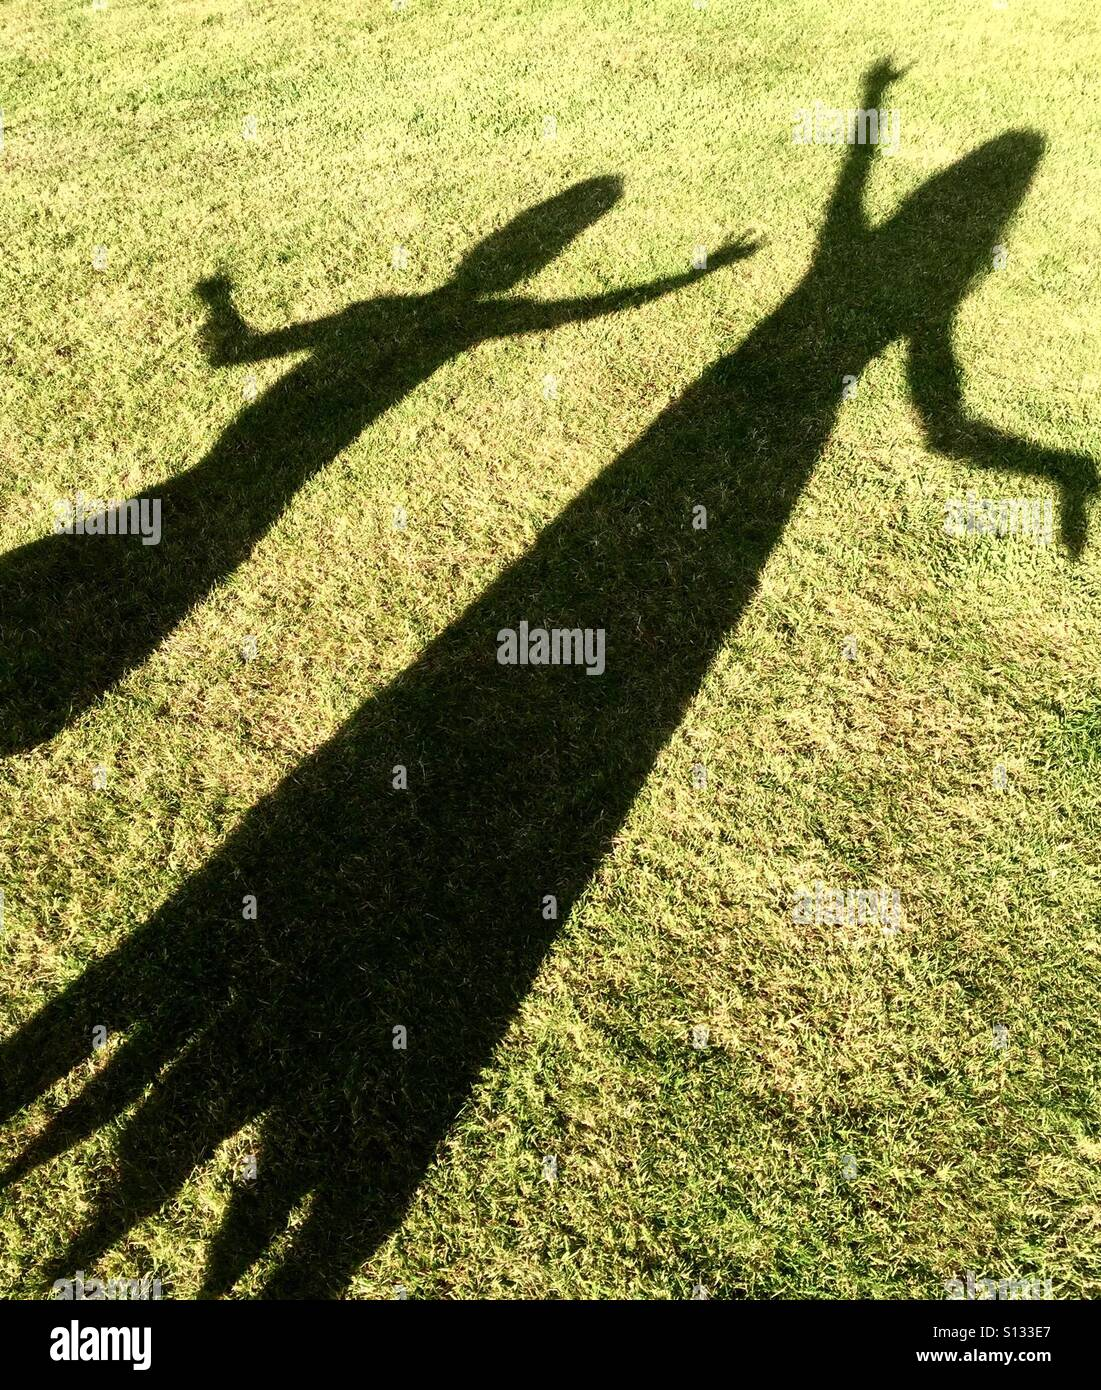 Girls shadows on the grass - Stock Image